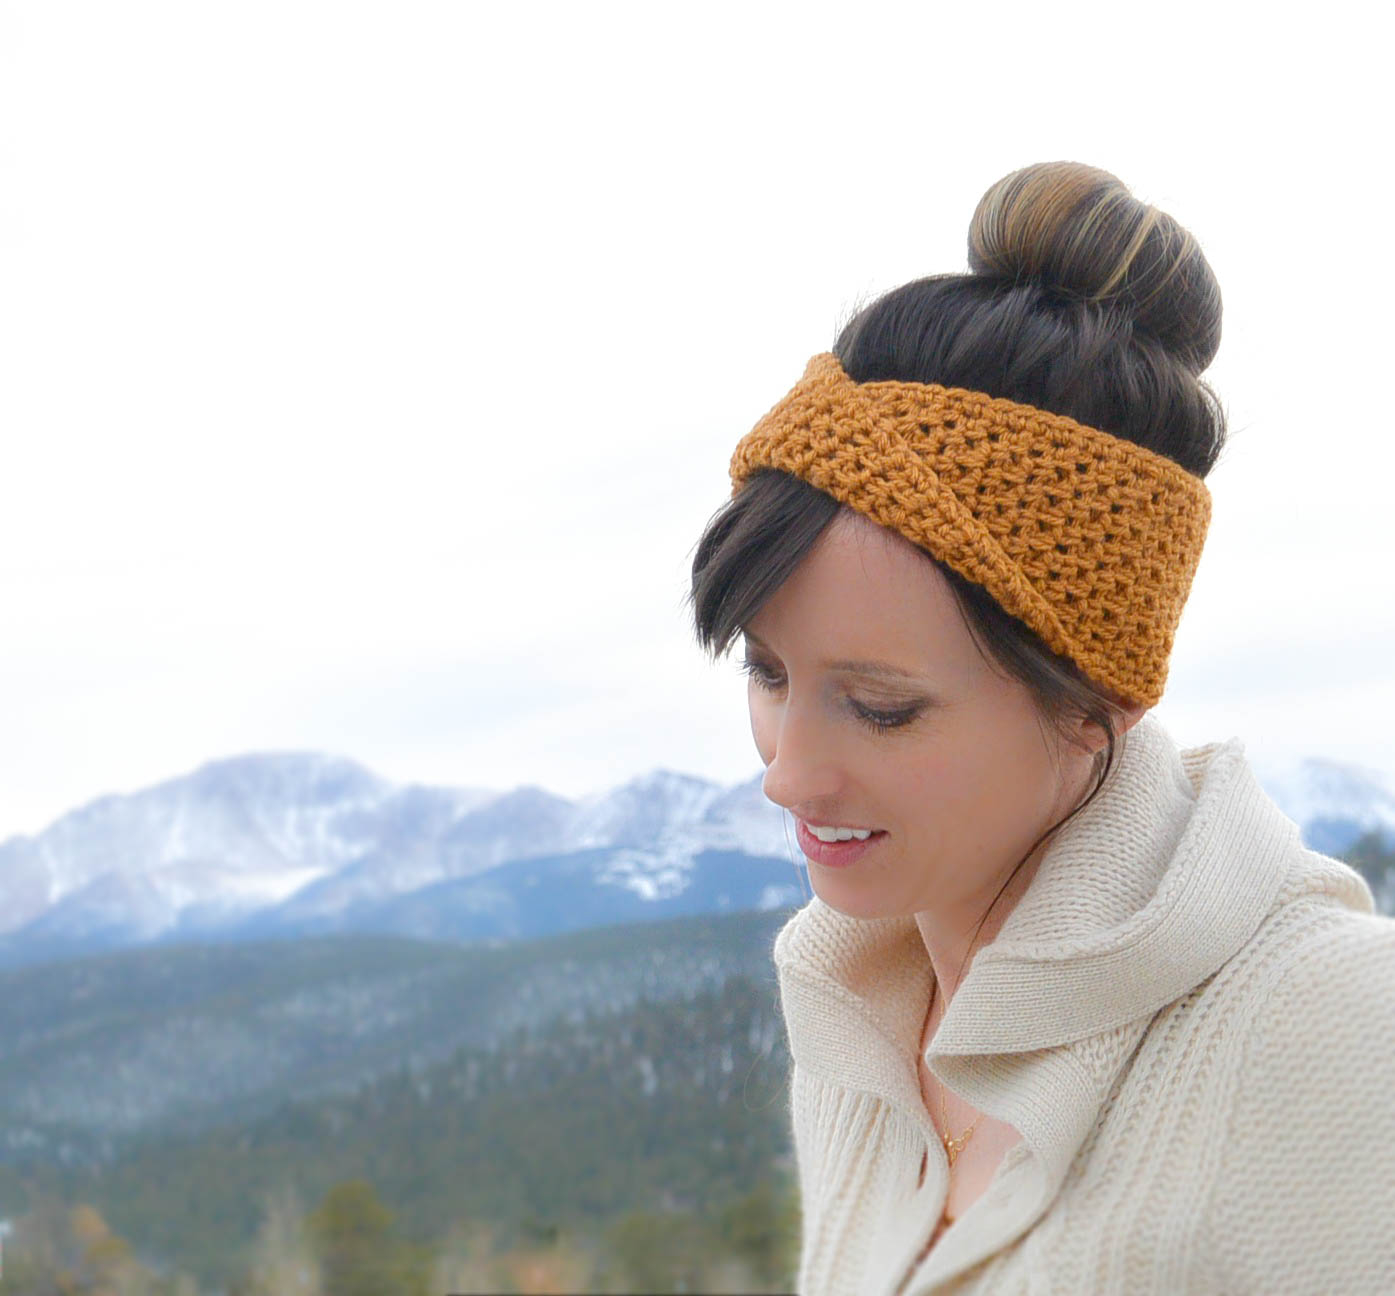 Easy Cable Knit Headband Pattern Vintage Knit Tie Headband Pattern Mama In A Stitch